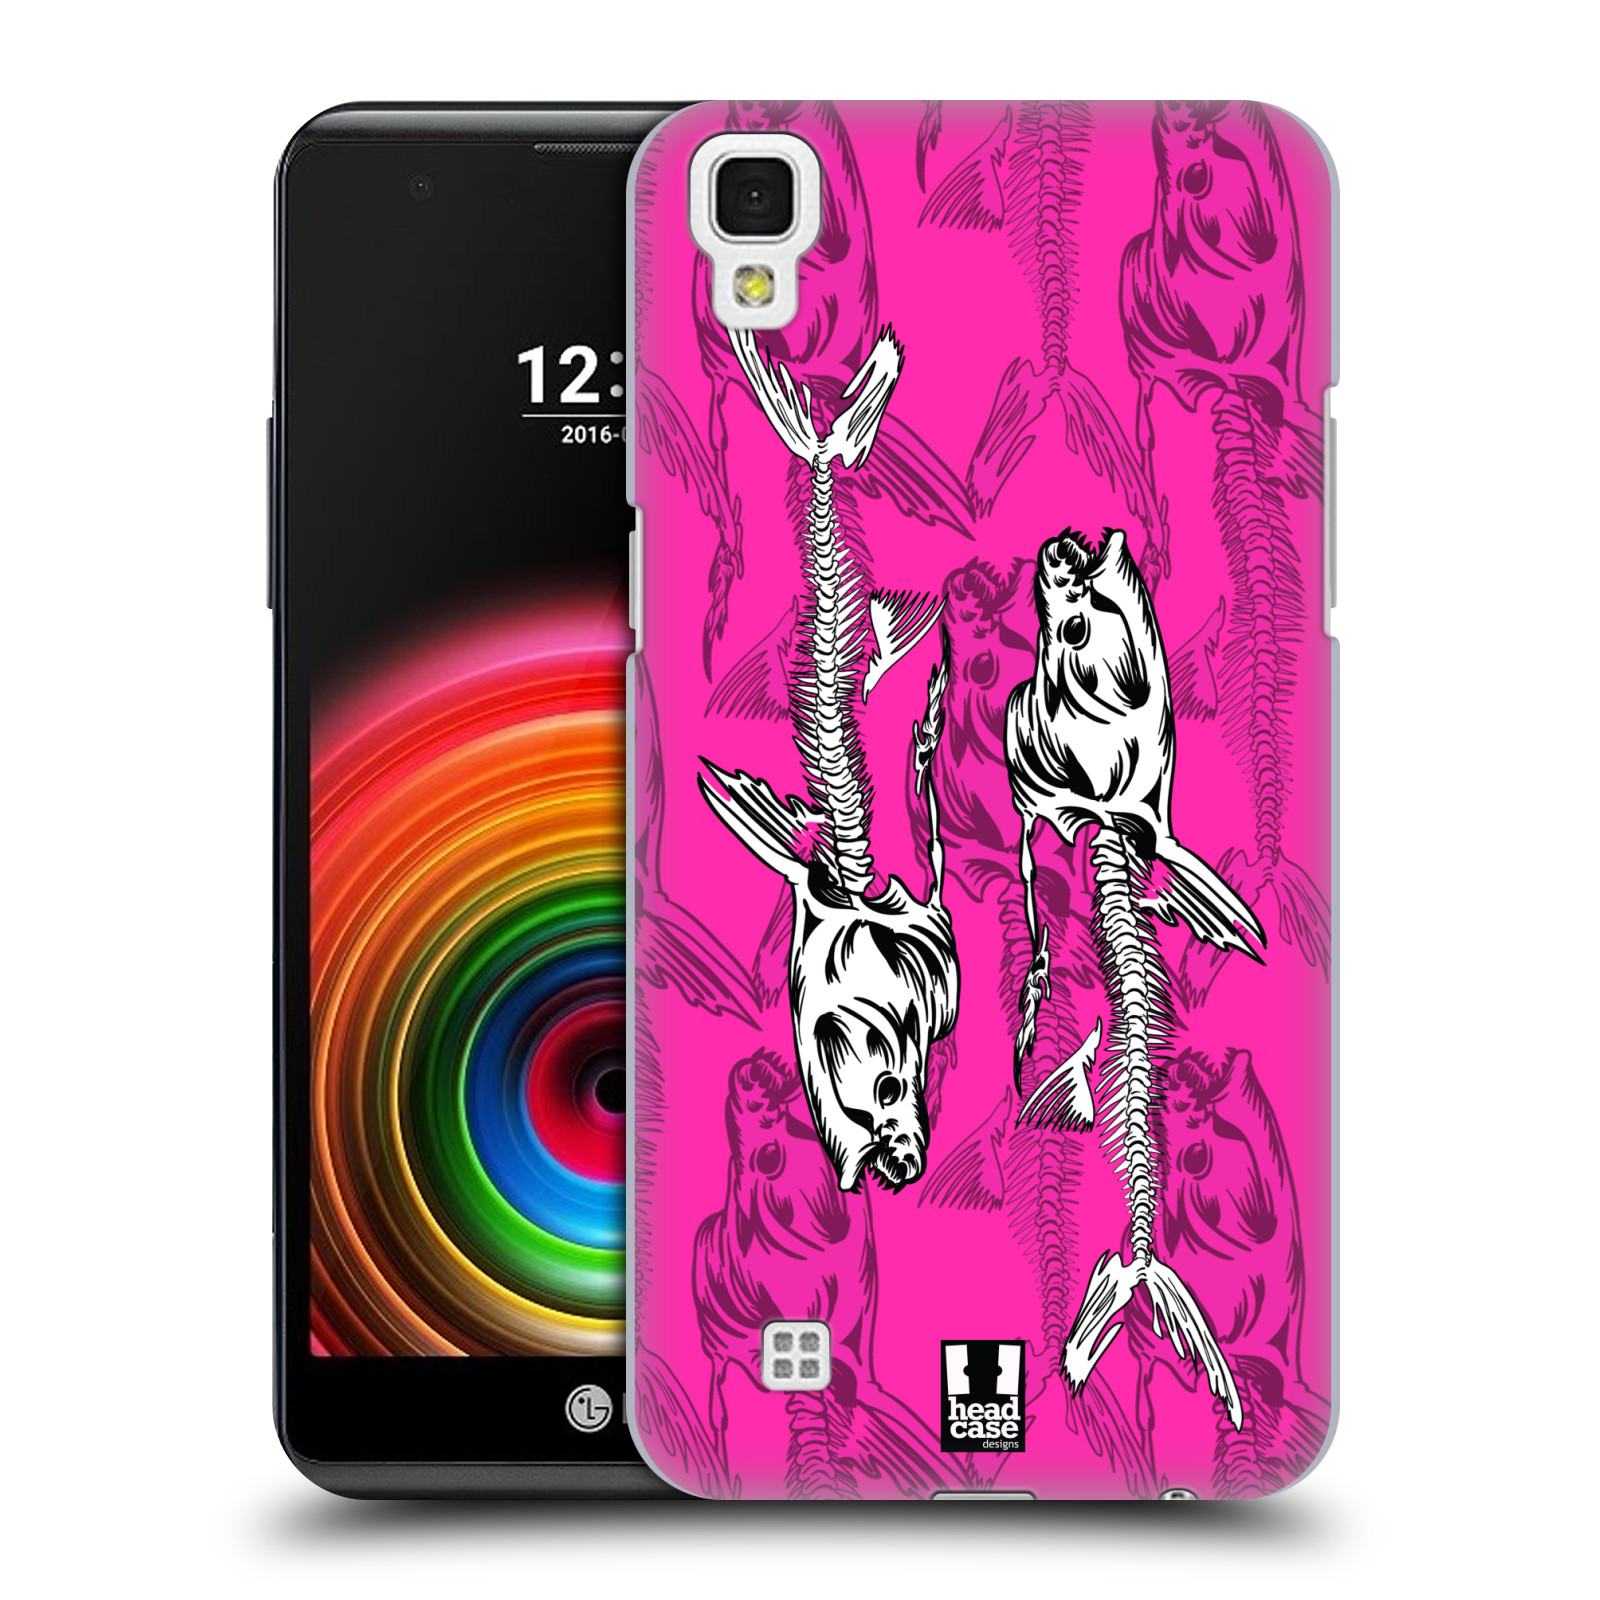 Head case designs fish bone hard back case for lg phones 2 for Cell phone cover design ideas